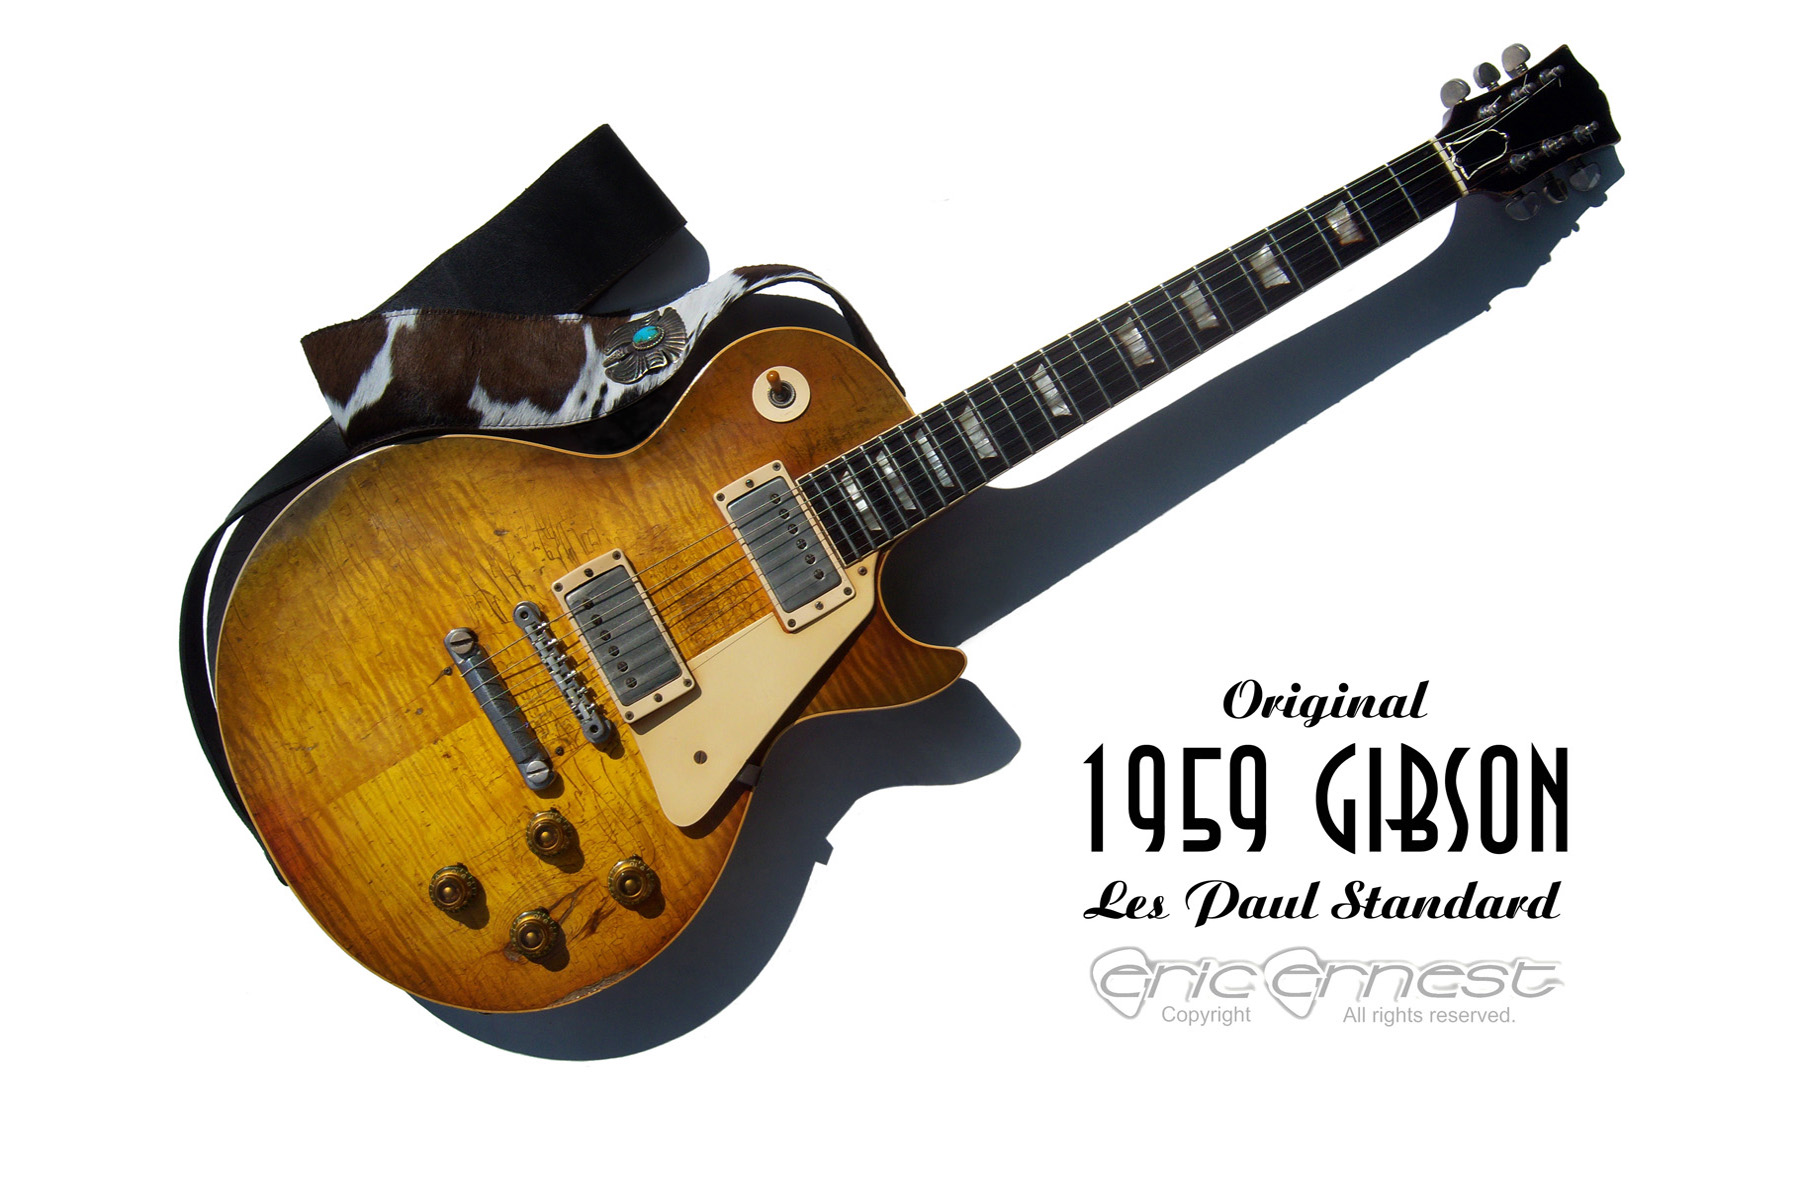 Guitar Wallpapers 1959 Gibson Les Paul Standard Reissue 1800 X 1200